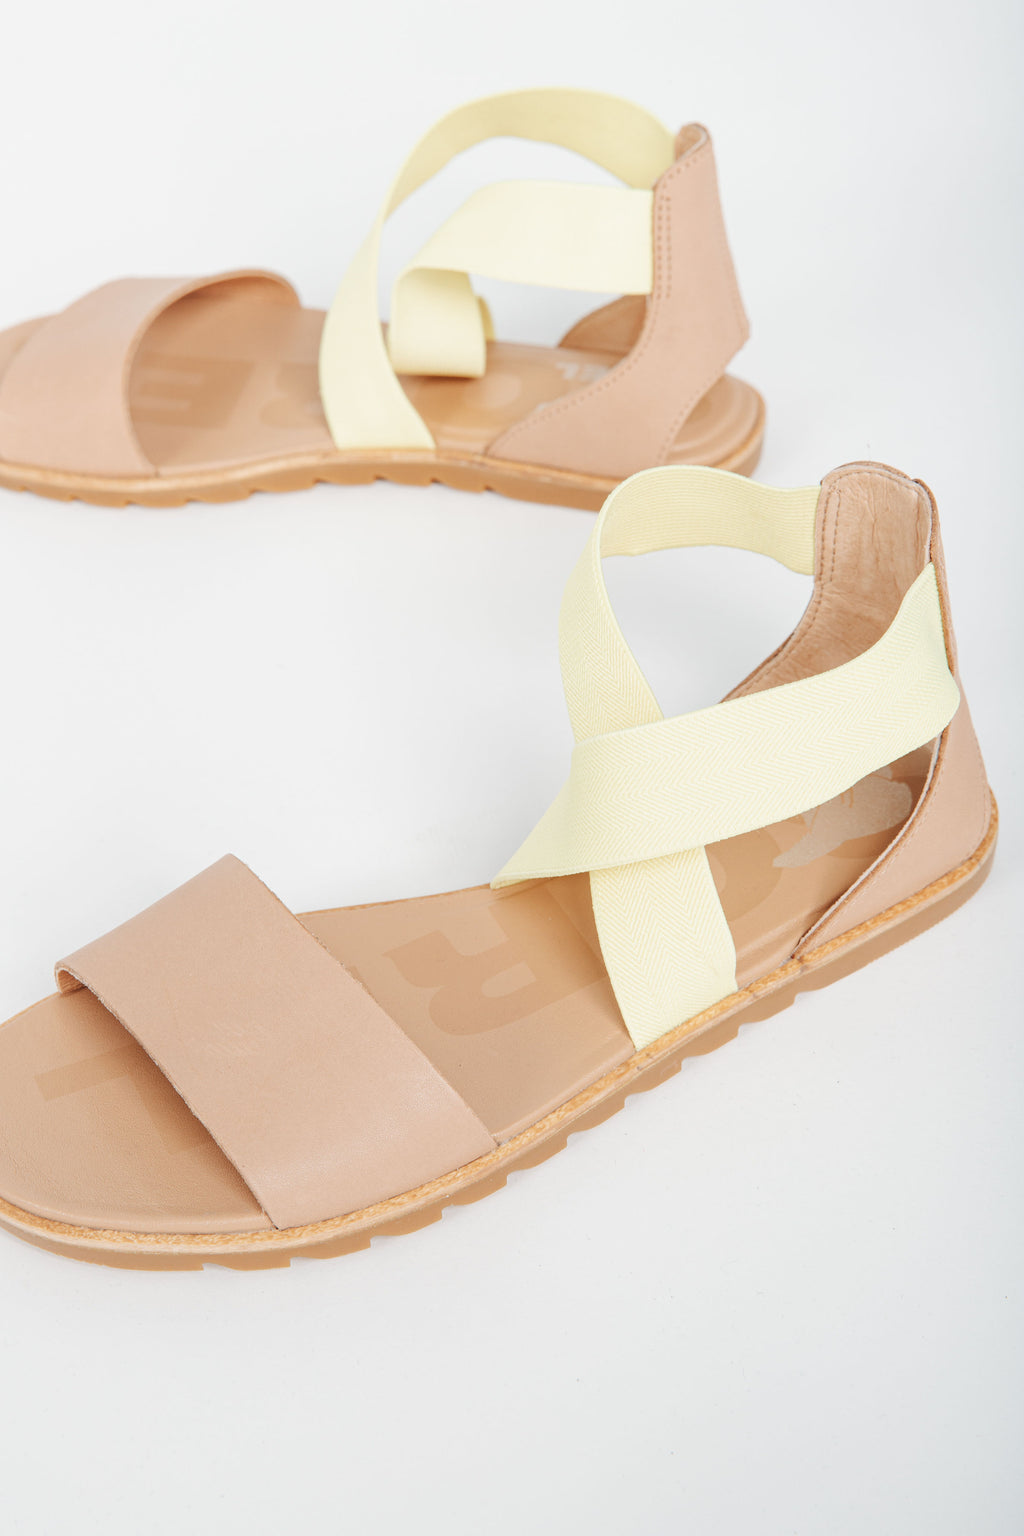 SOREL: Ella Sandal in Sunnyside Tan